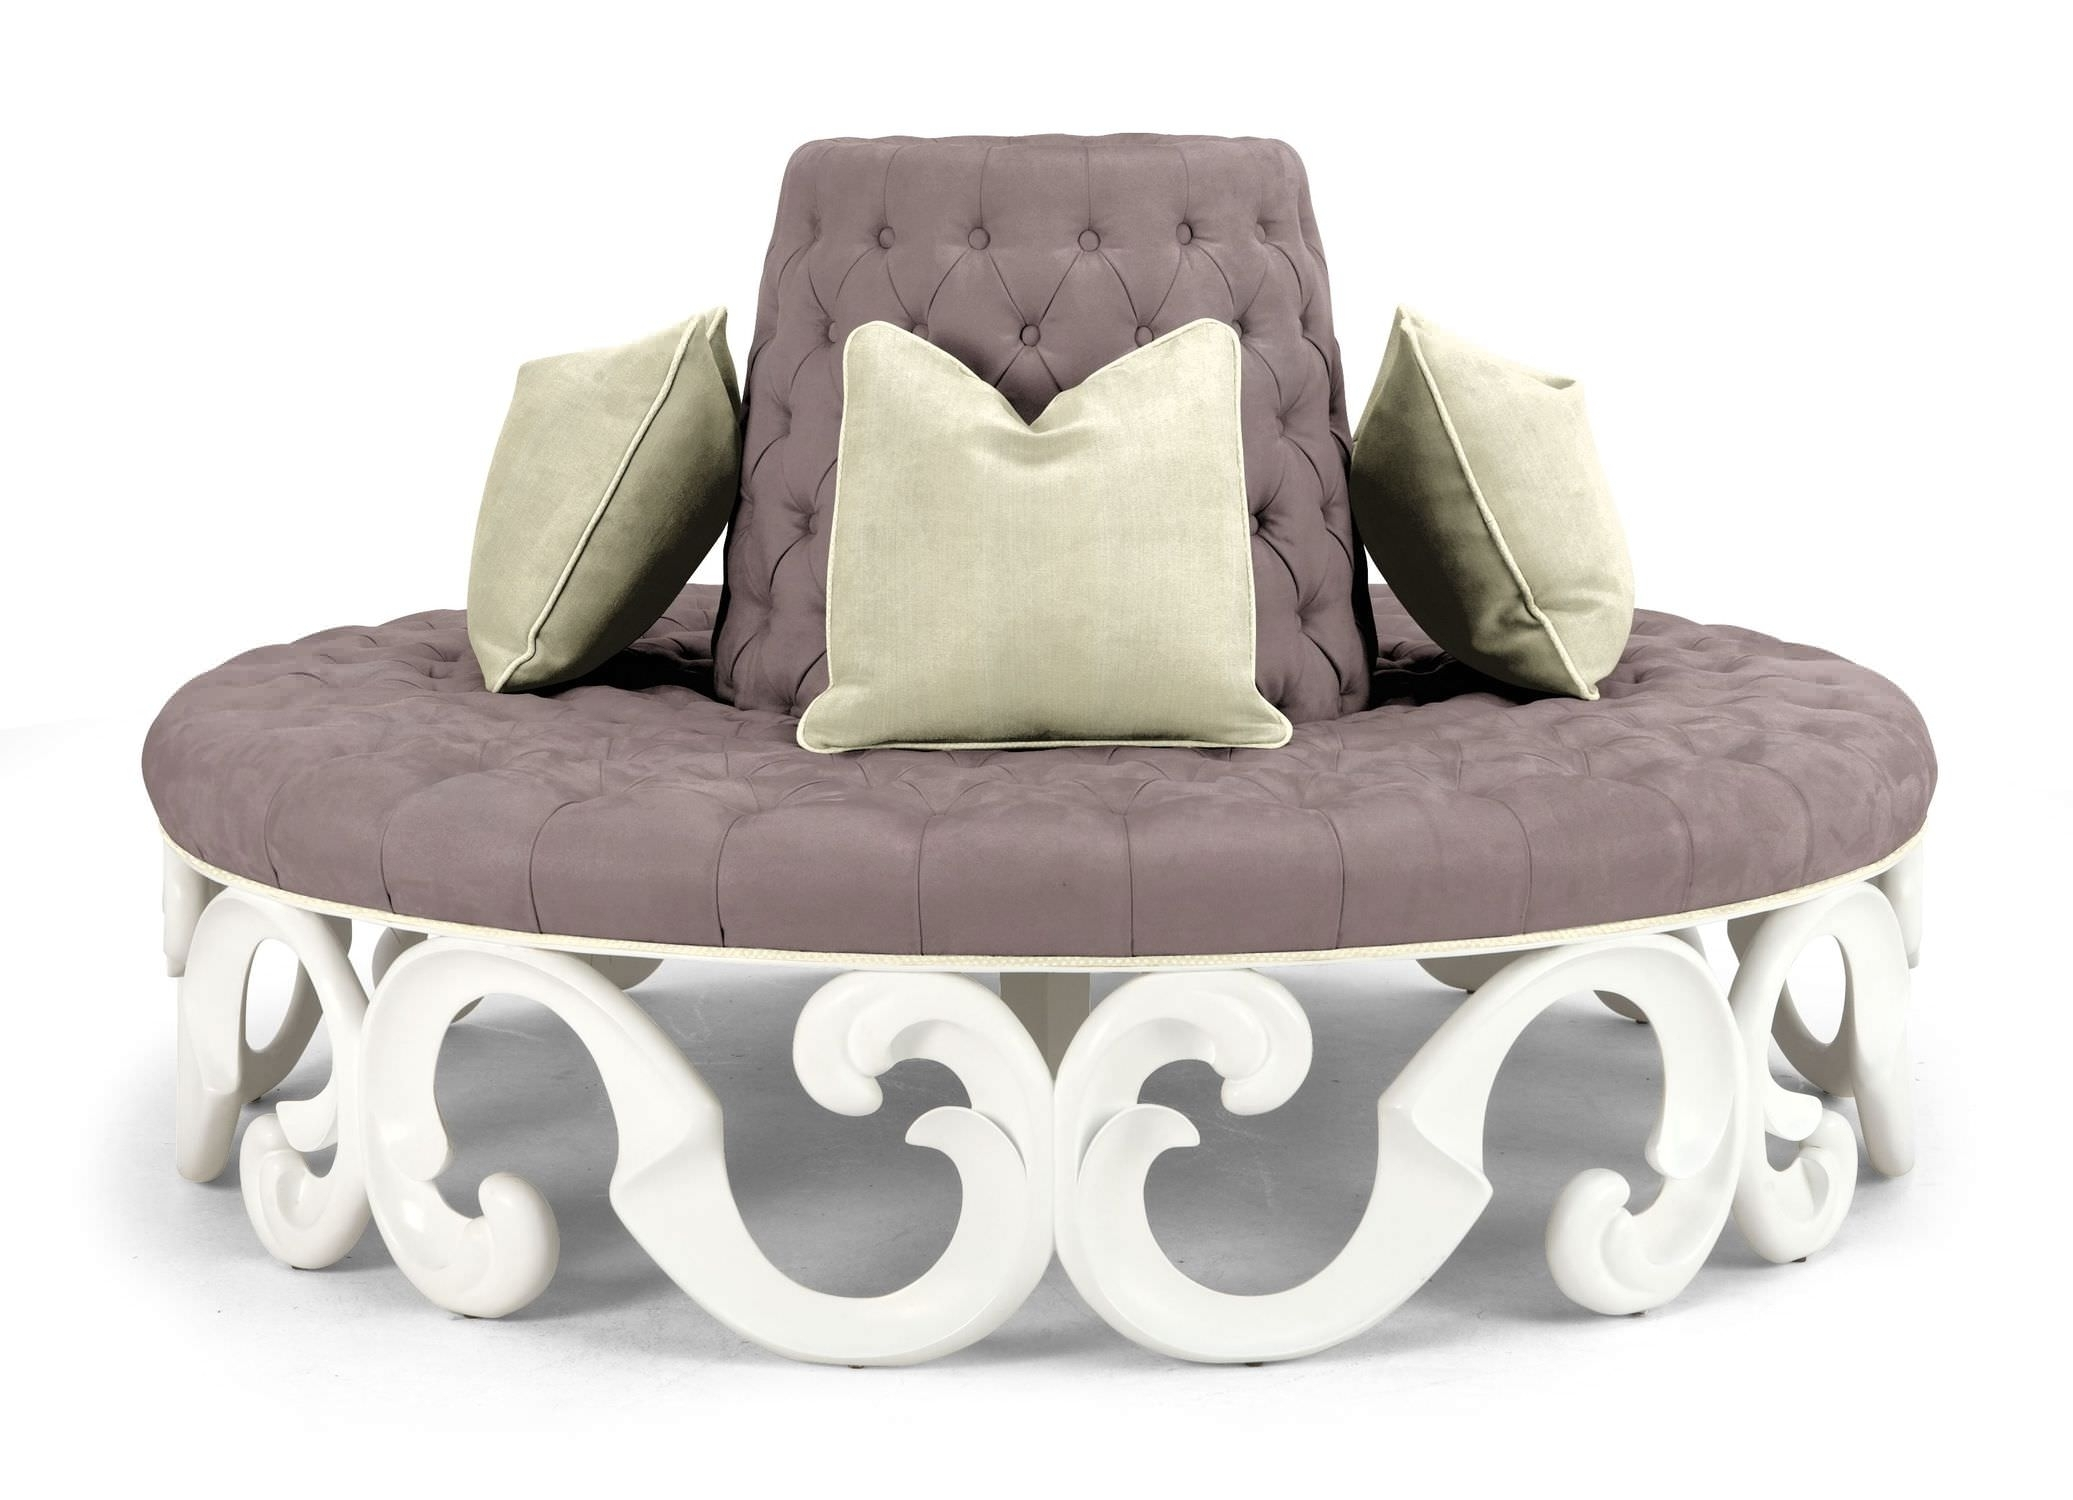 Image of: Awesome Oversized Round Outdoor Couch With Tufted Cushion And With Regard To Round Outdoor Cushion Diy Simple Round Outdoor Cushion